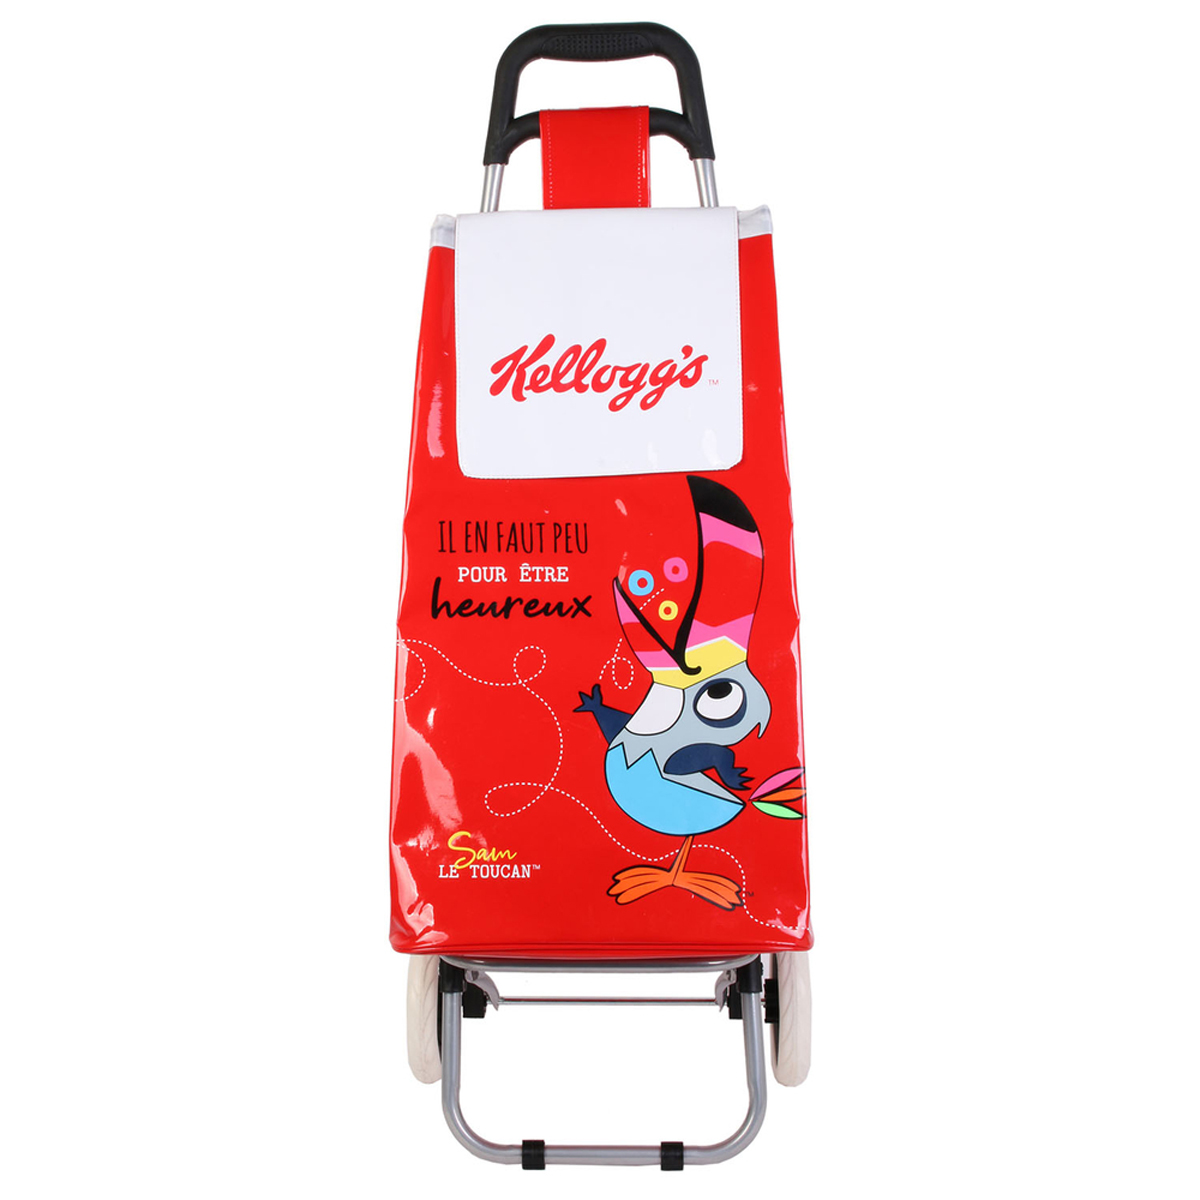 Caddy de course / Chariot shopping \'Kellogg\'s\' rouge - 95x36x31 cm - [A1236]